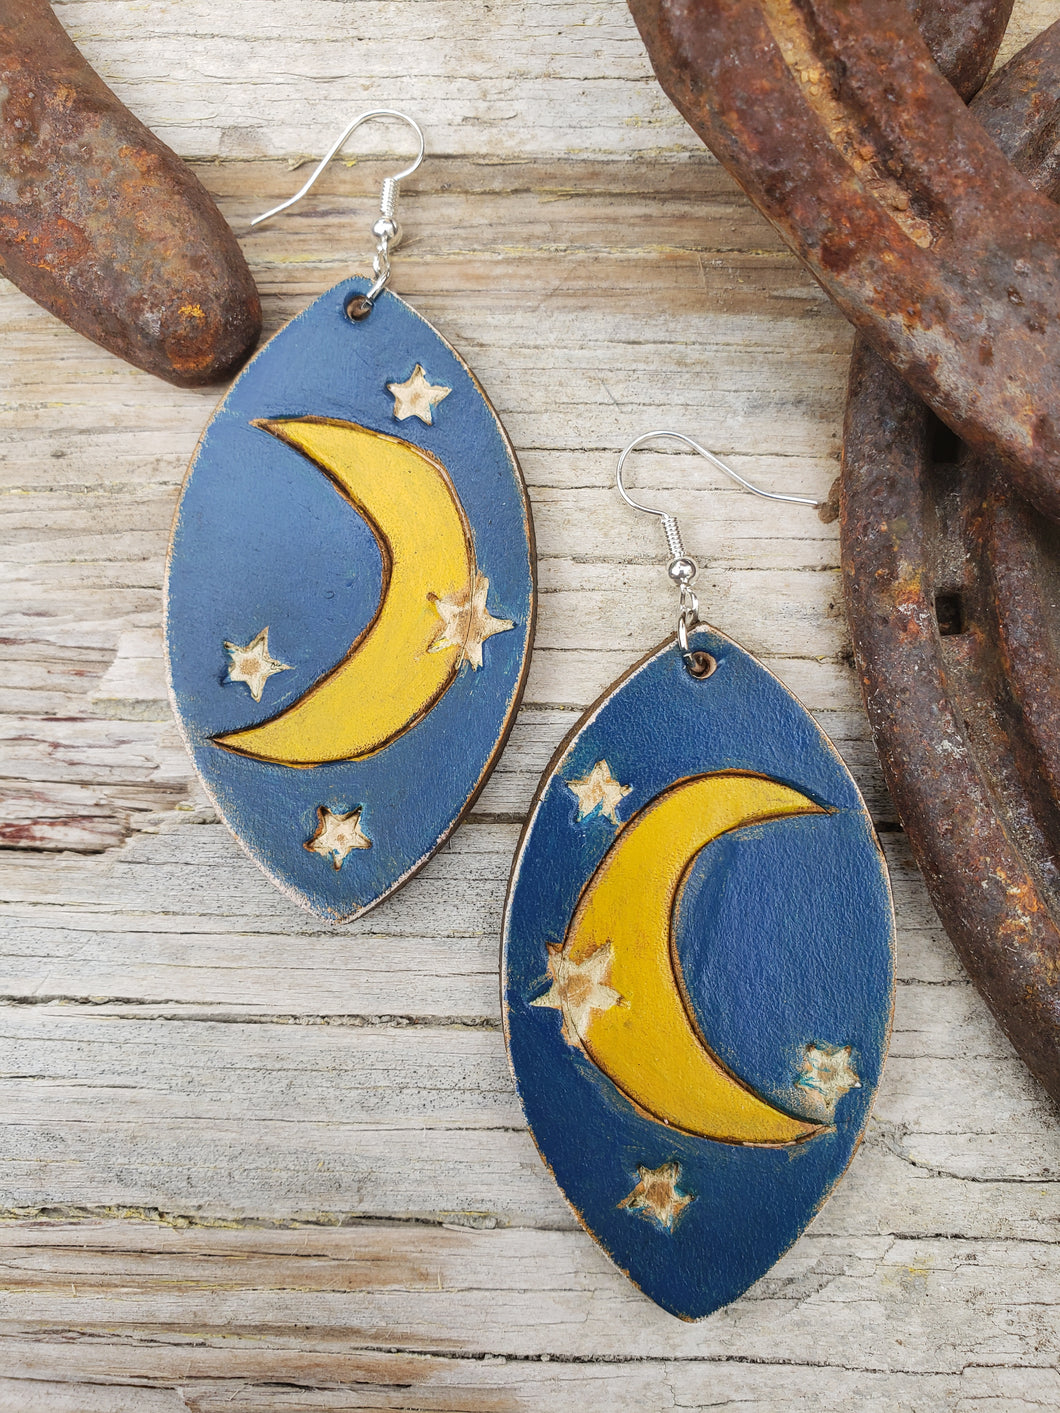 Desert nights tooled leather earrings